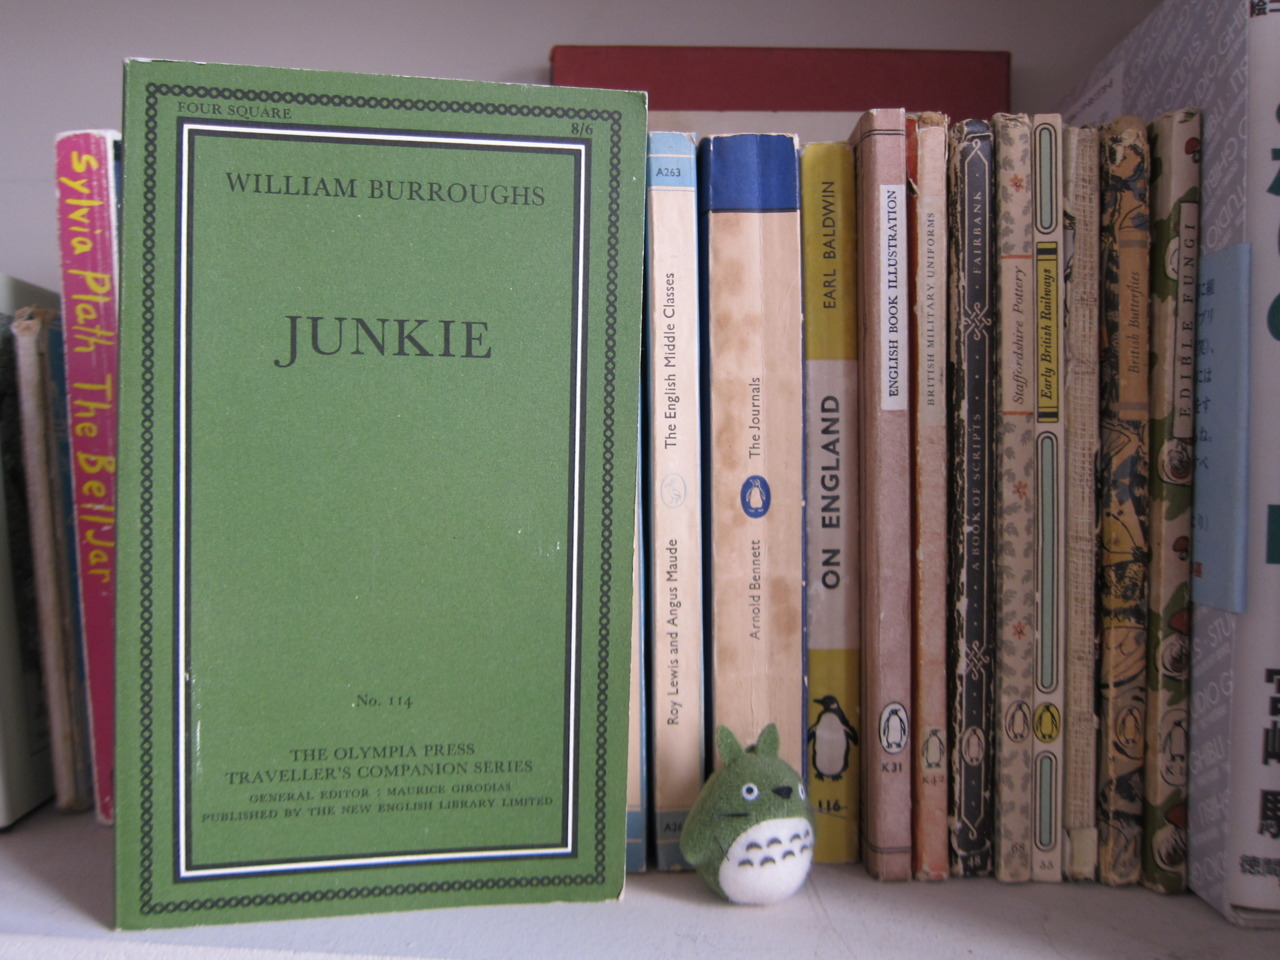 Junkie by William Burroughs.